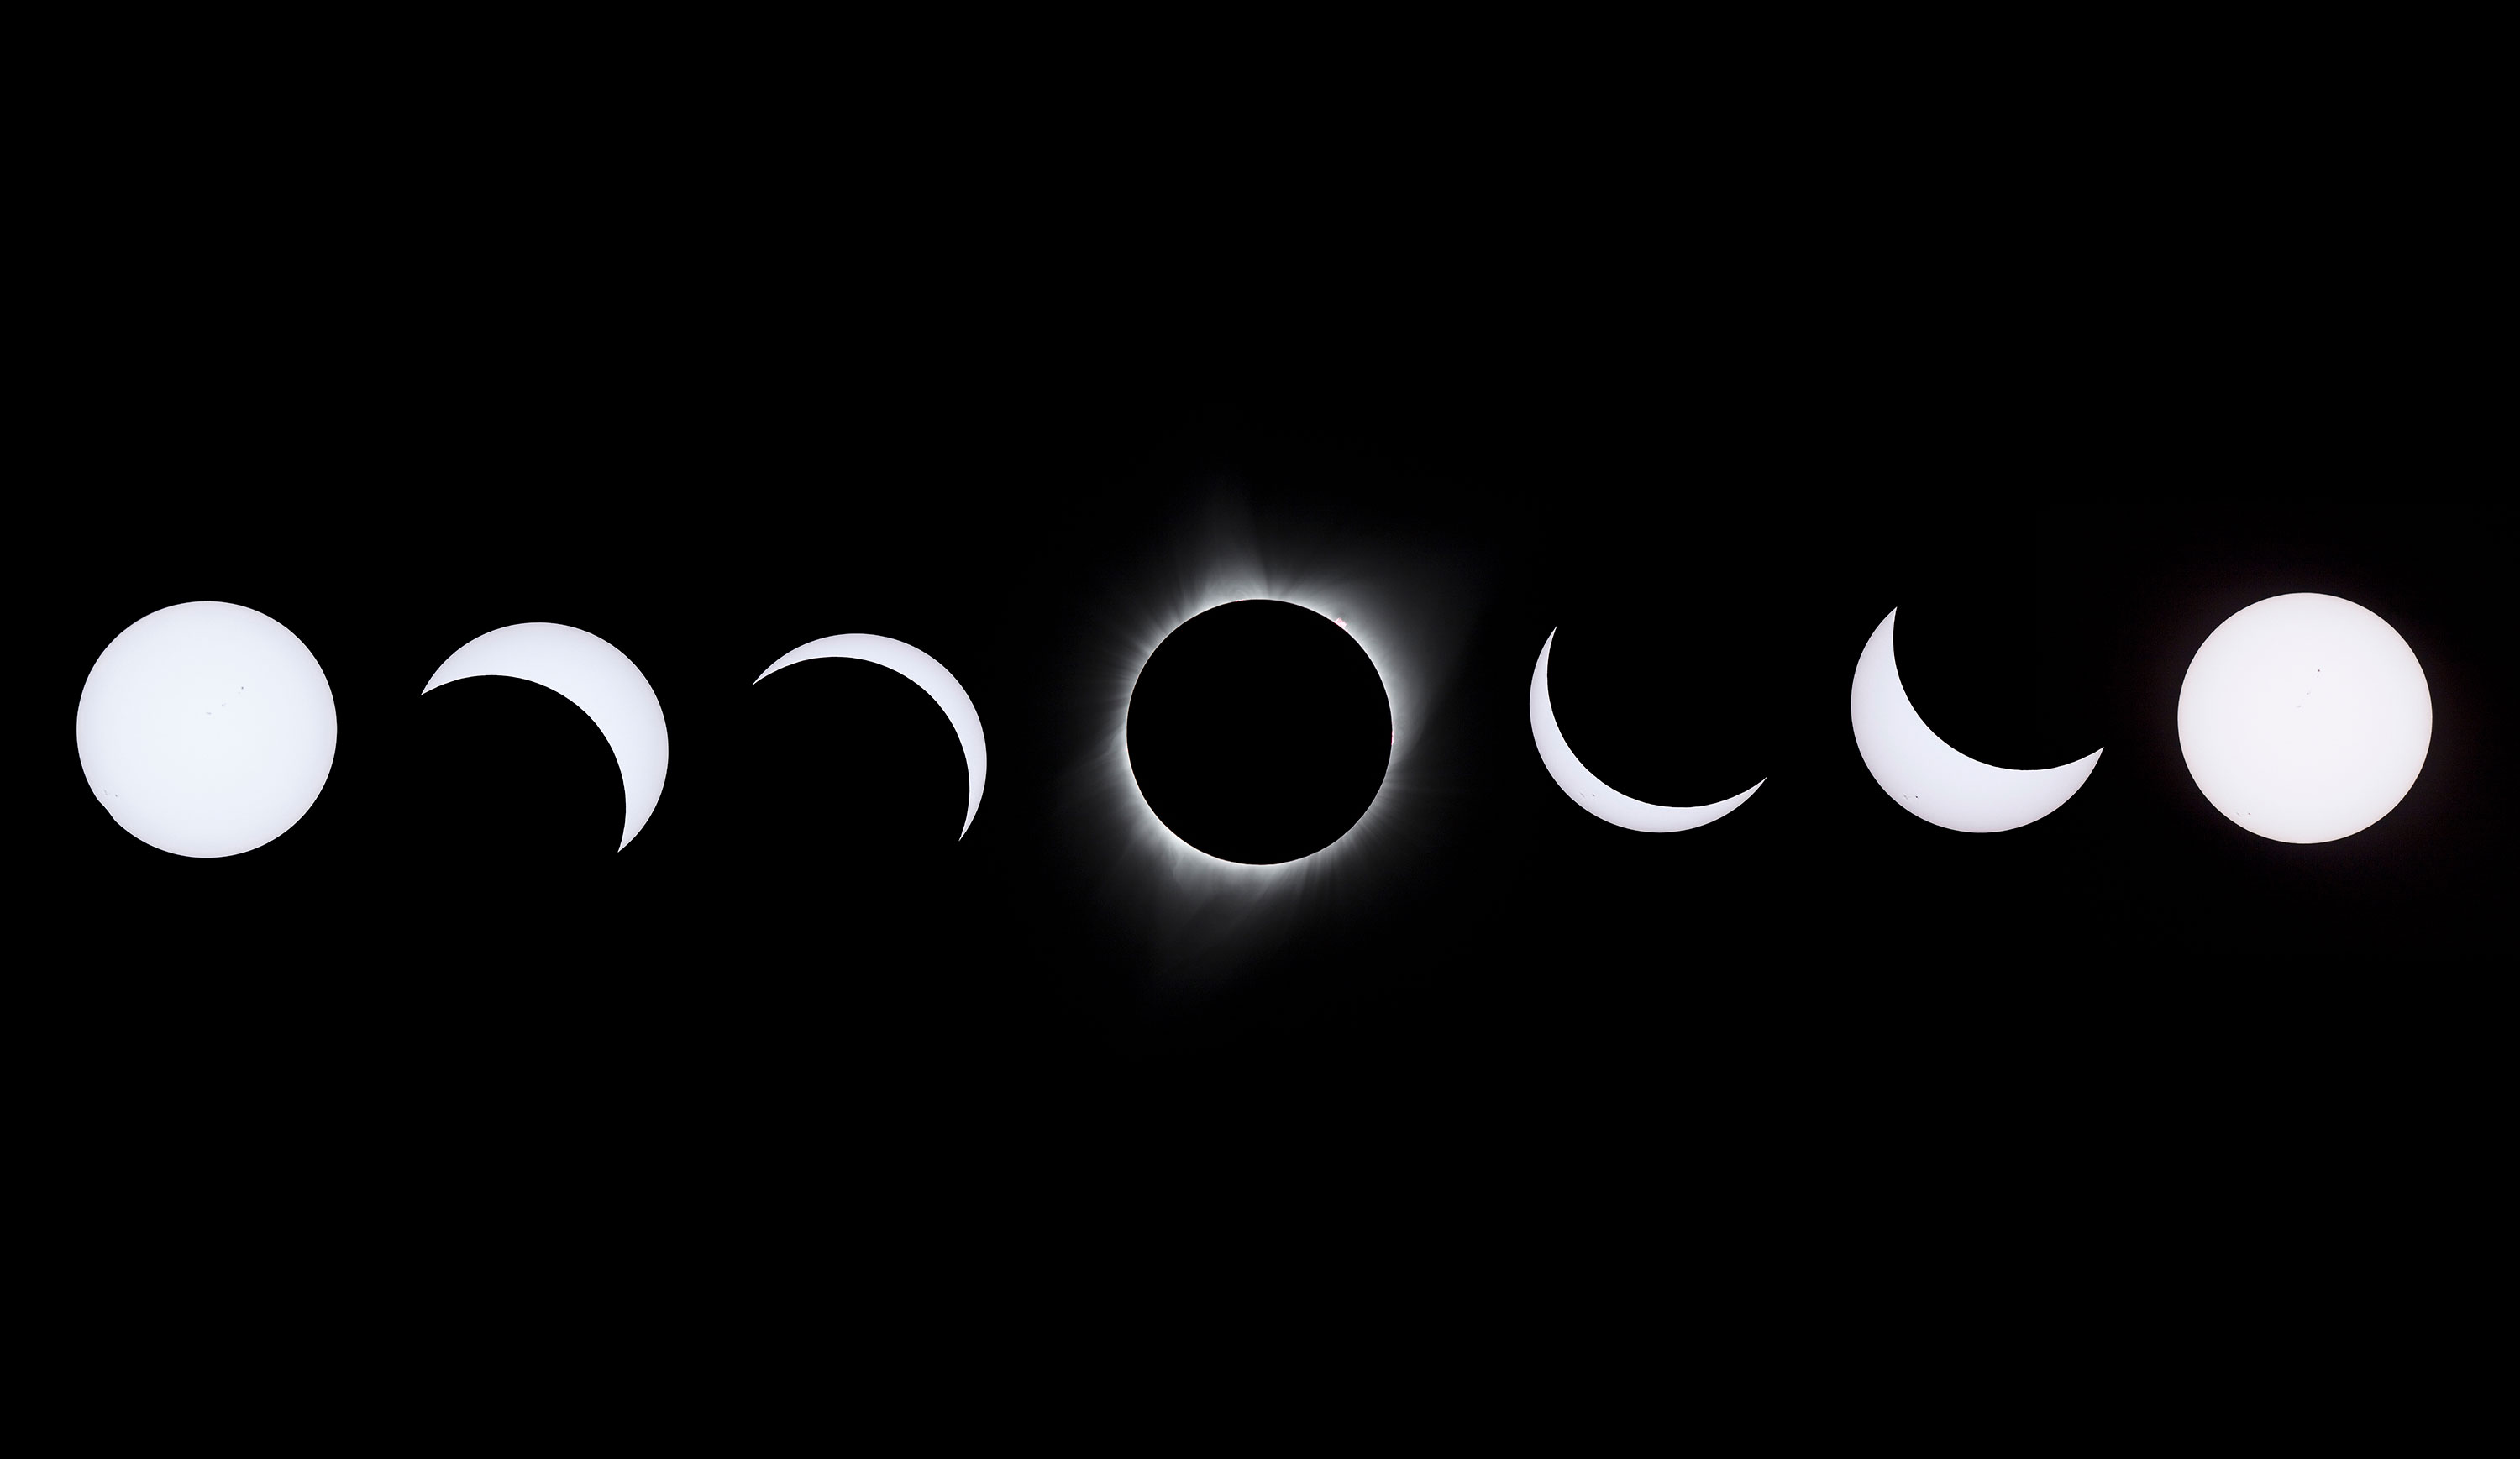 eclipse-sequence-2stanleyidweb